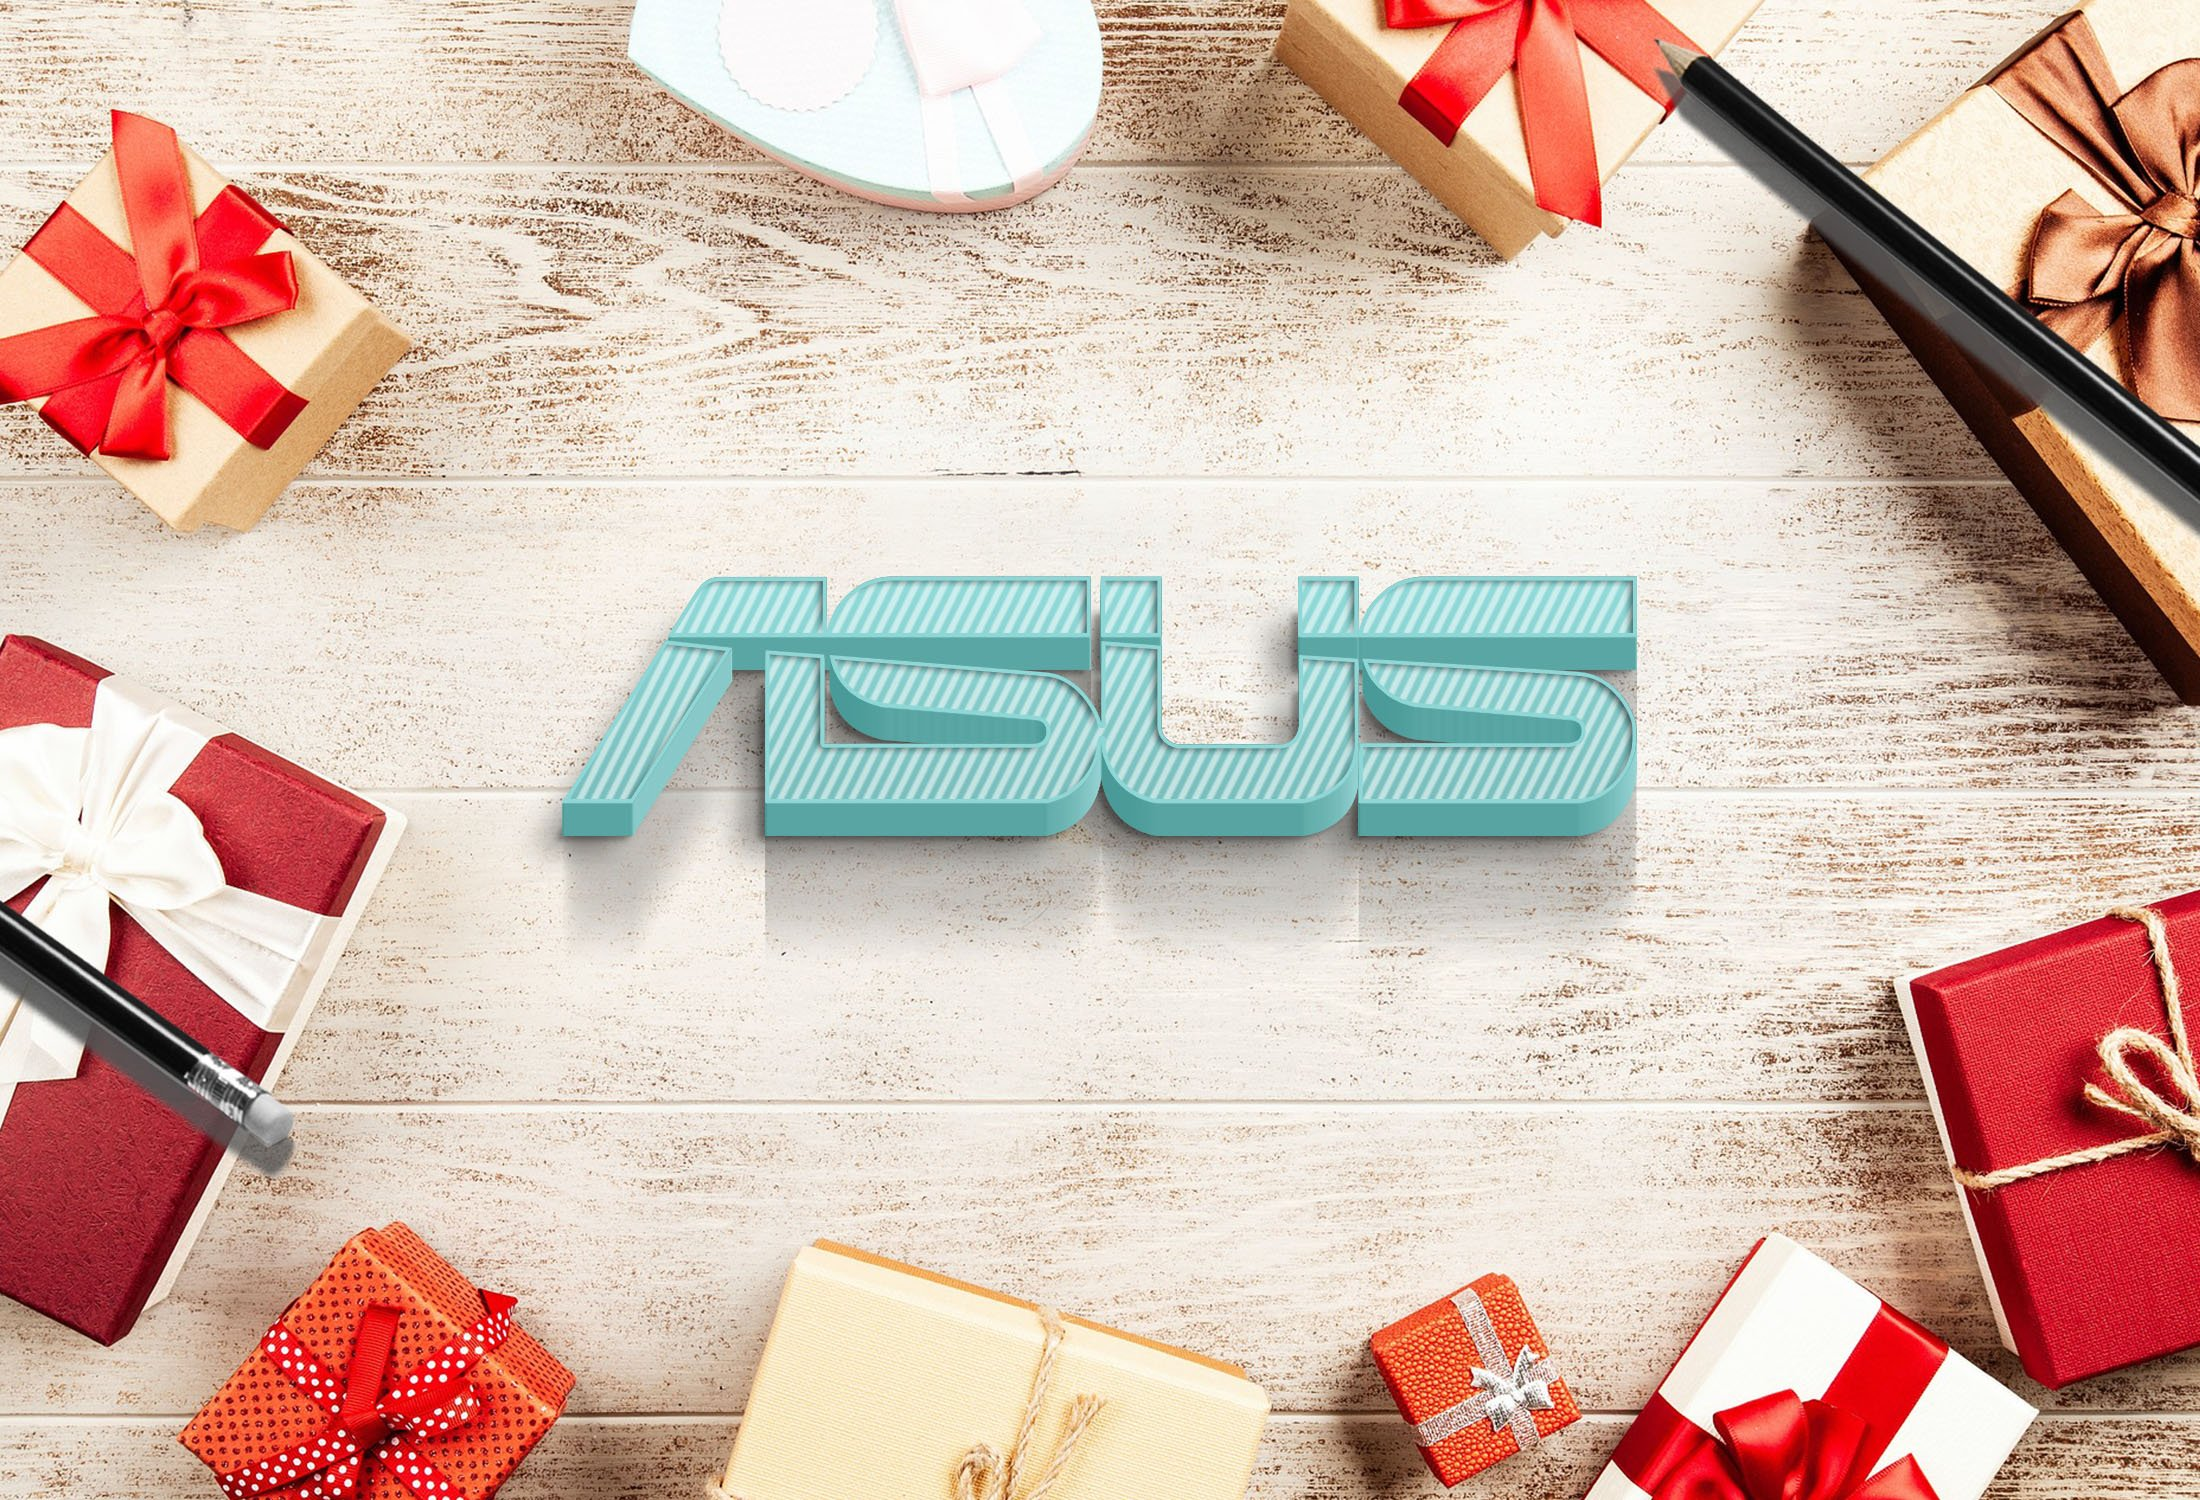 Asus on colorful wood mockup